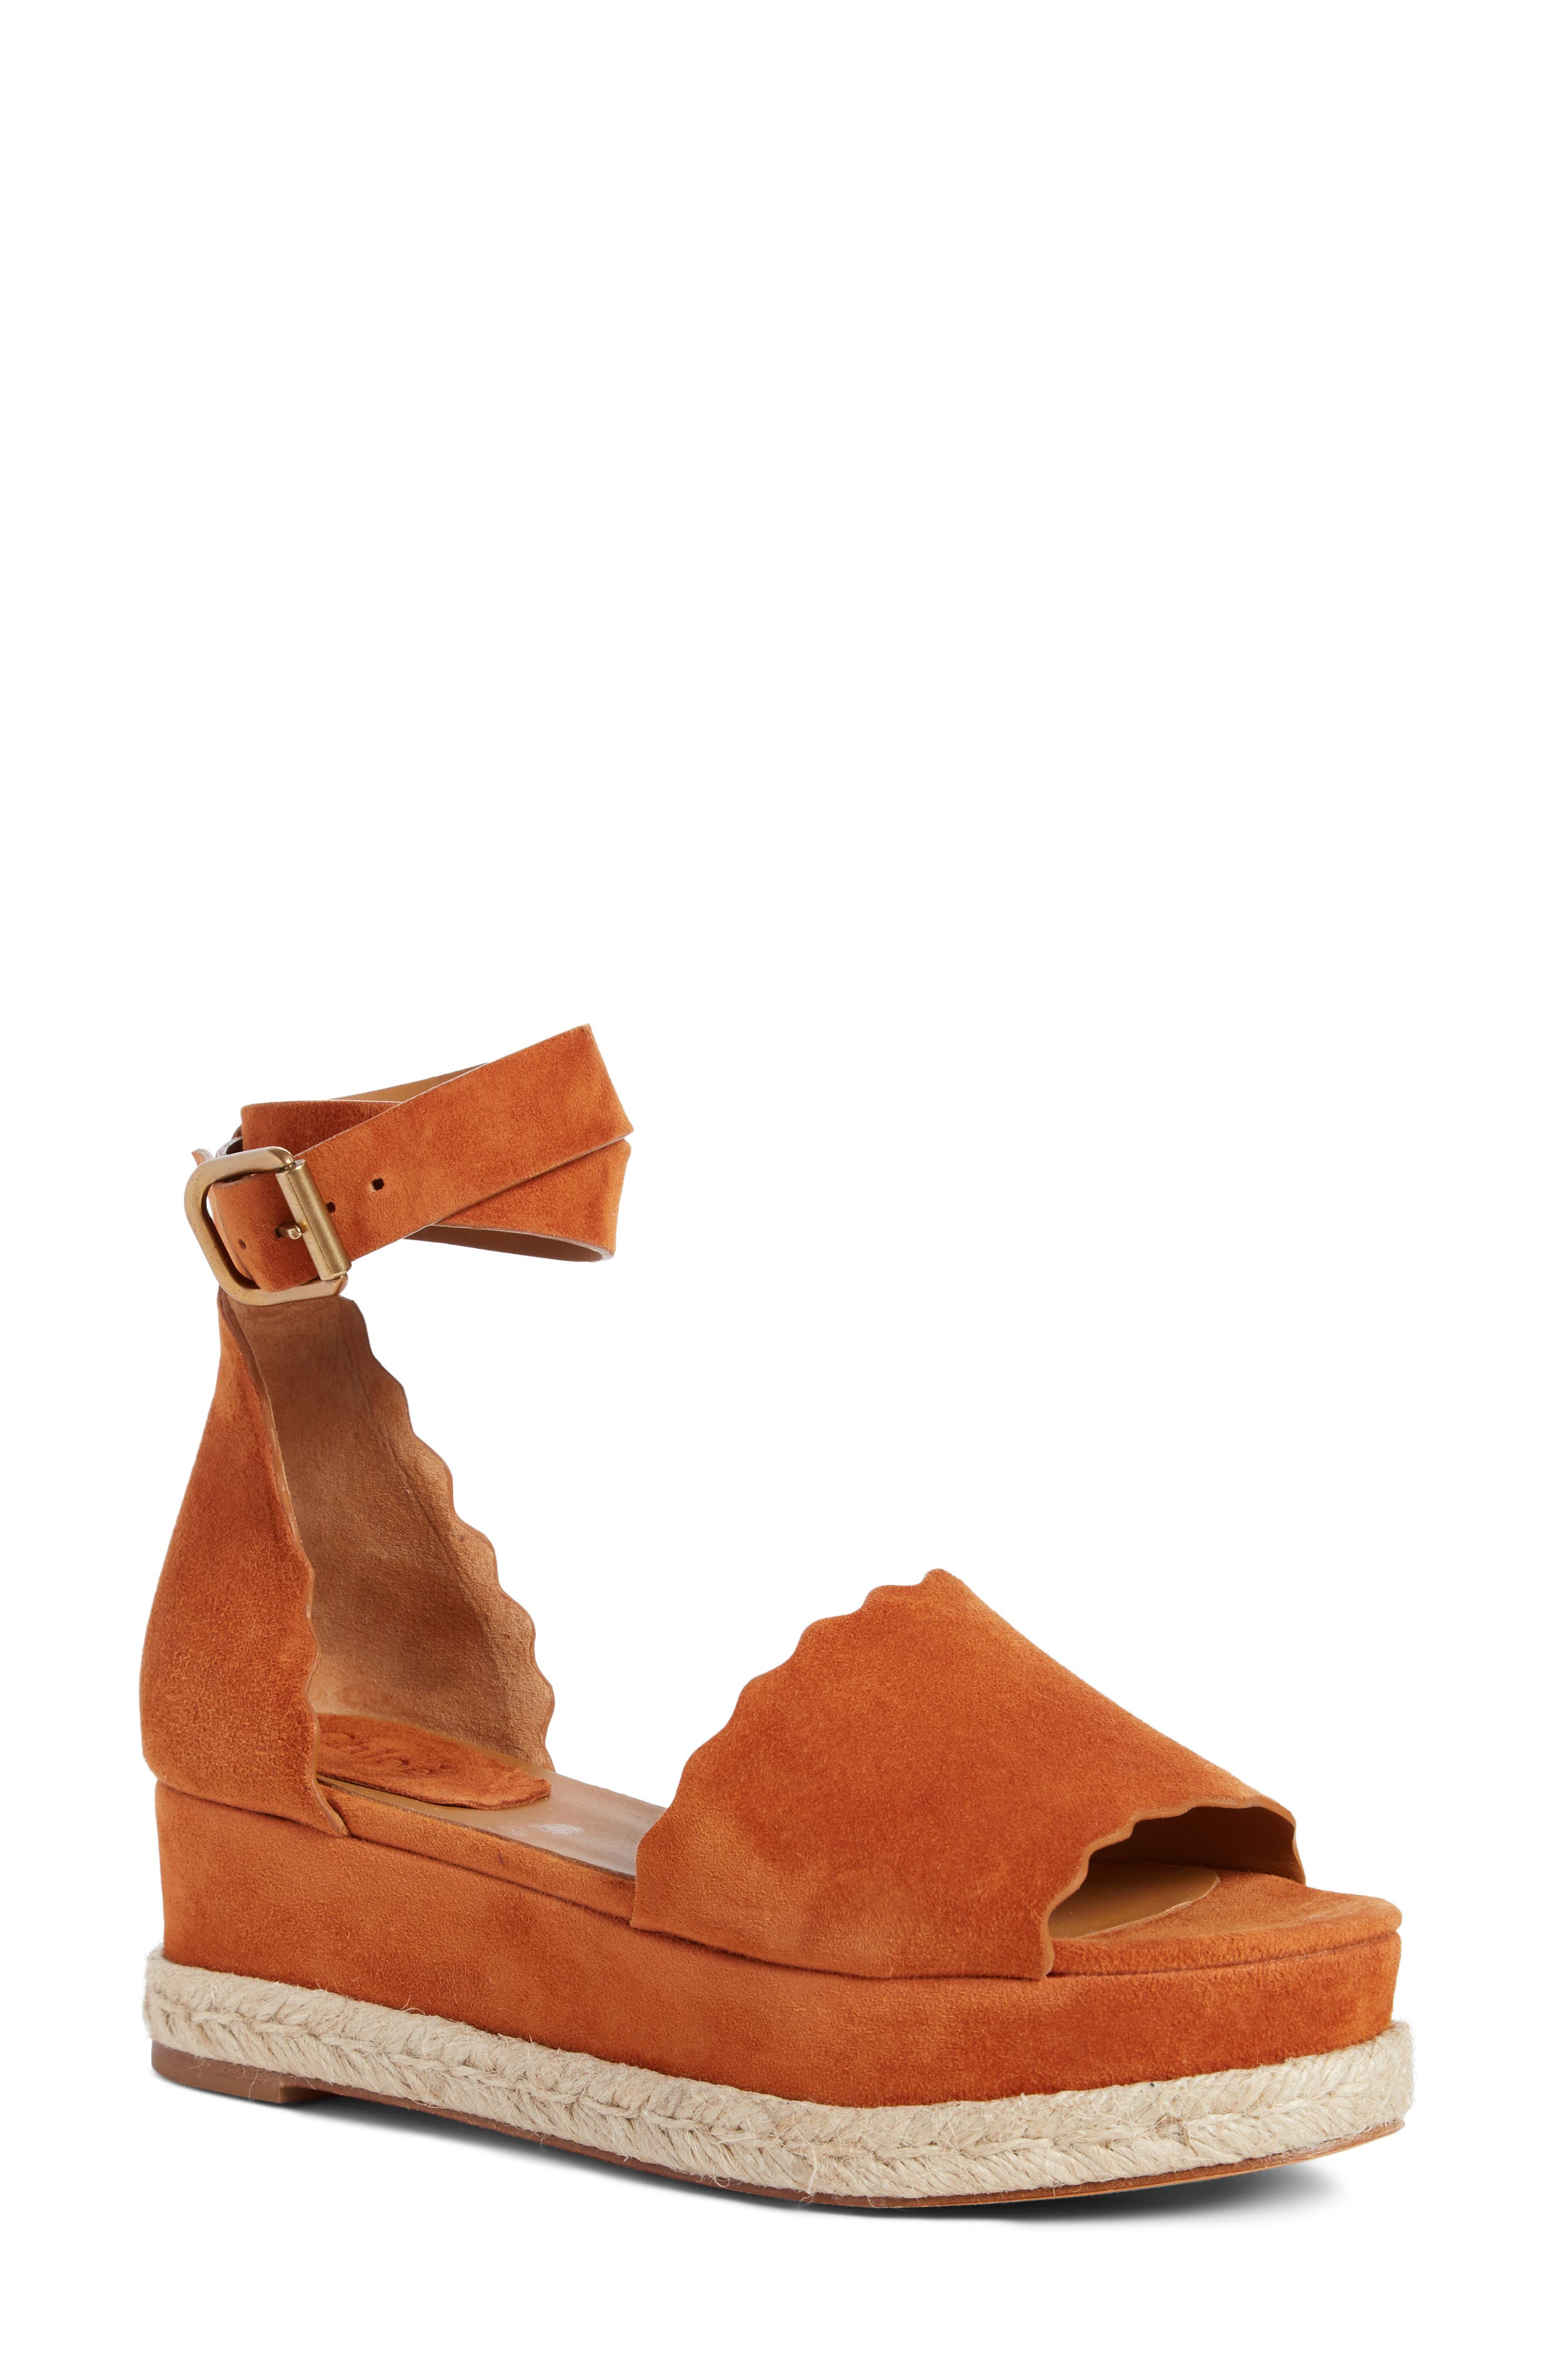 Lauren Espadrille Wedge Sandal,                         Main,                         color, OCHRE DELIGHT